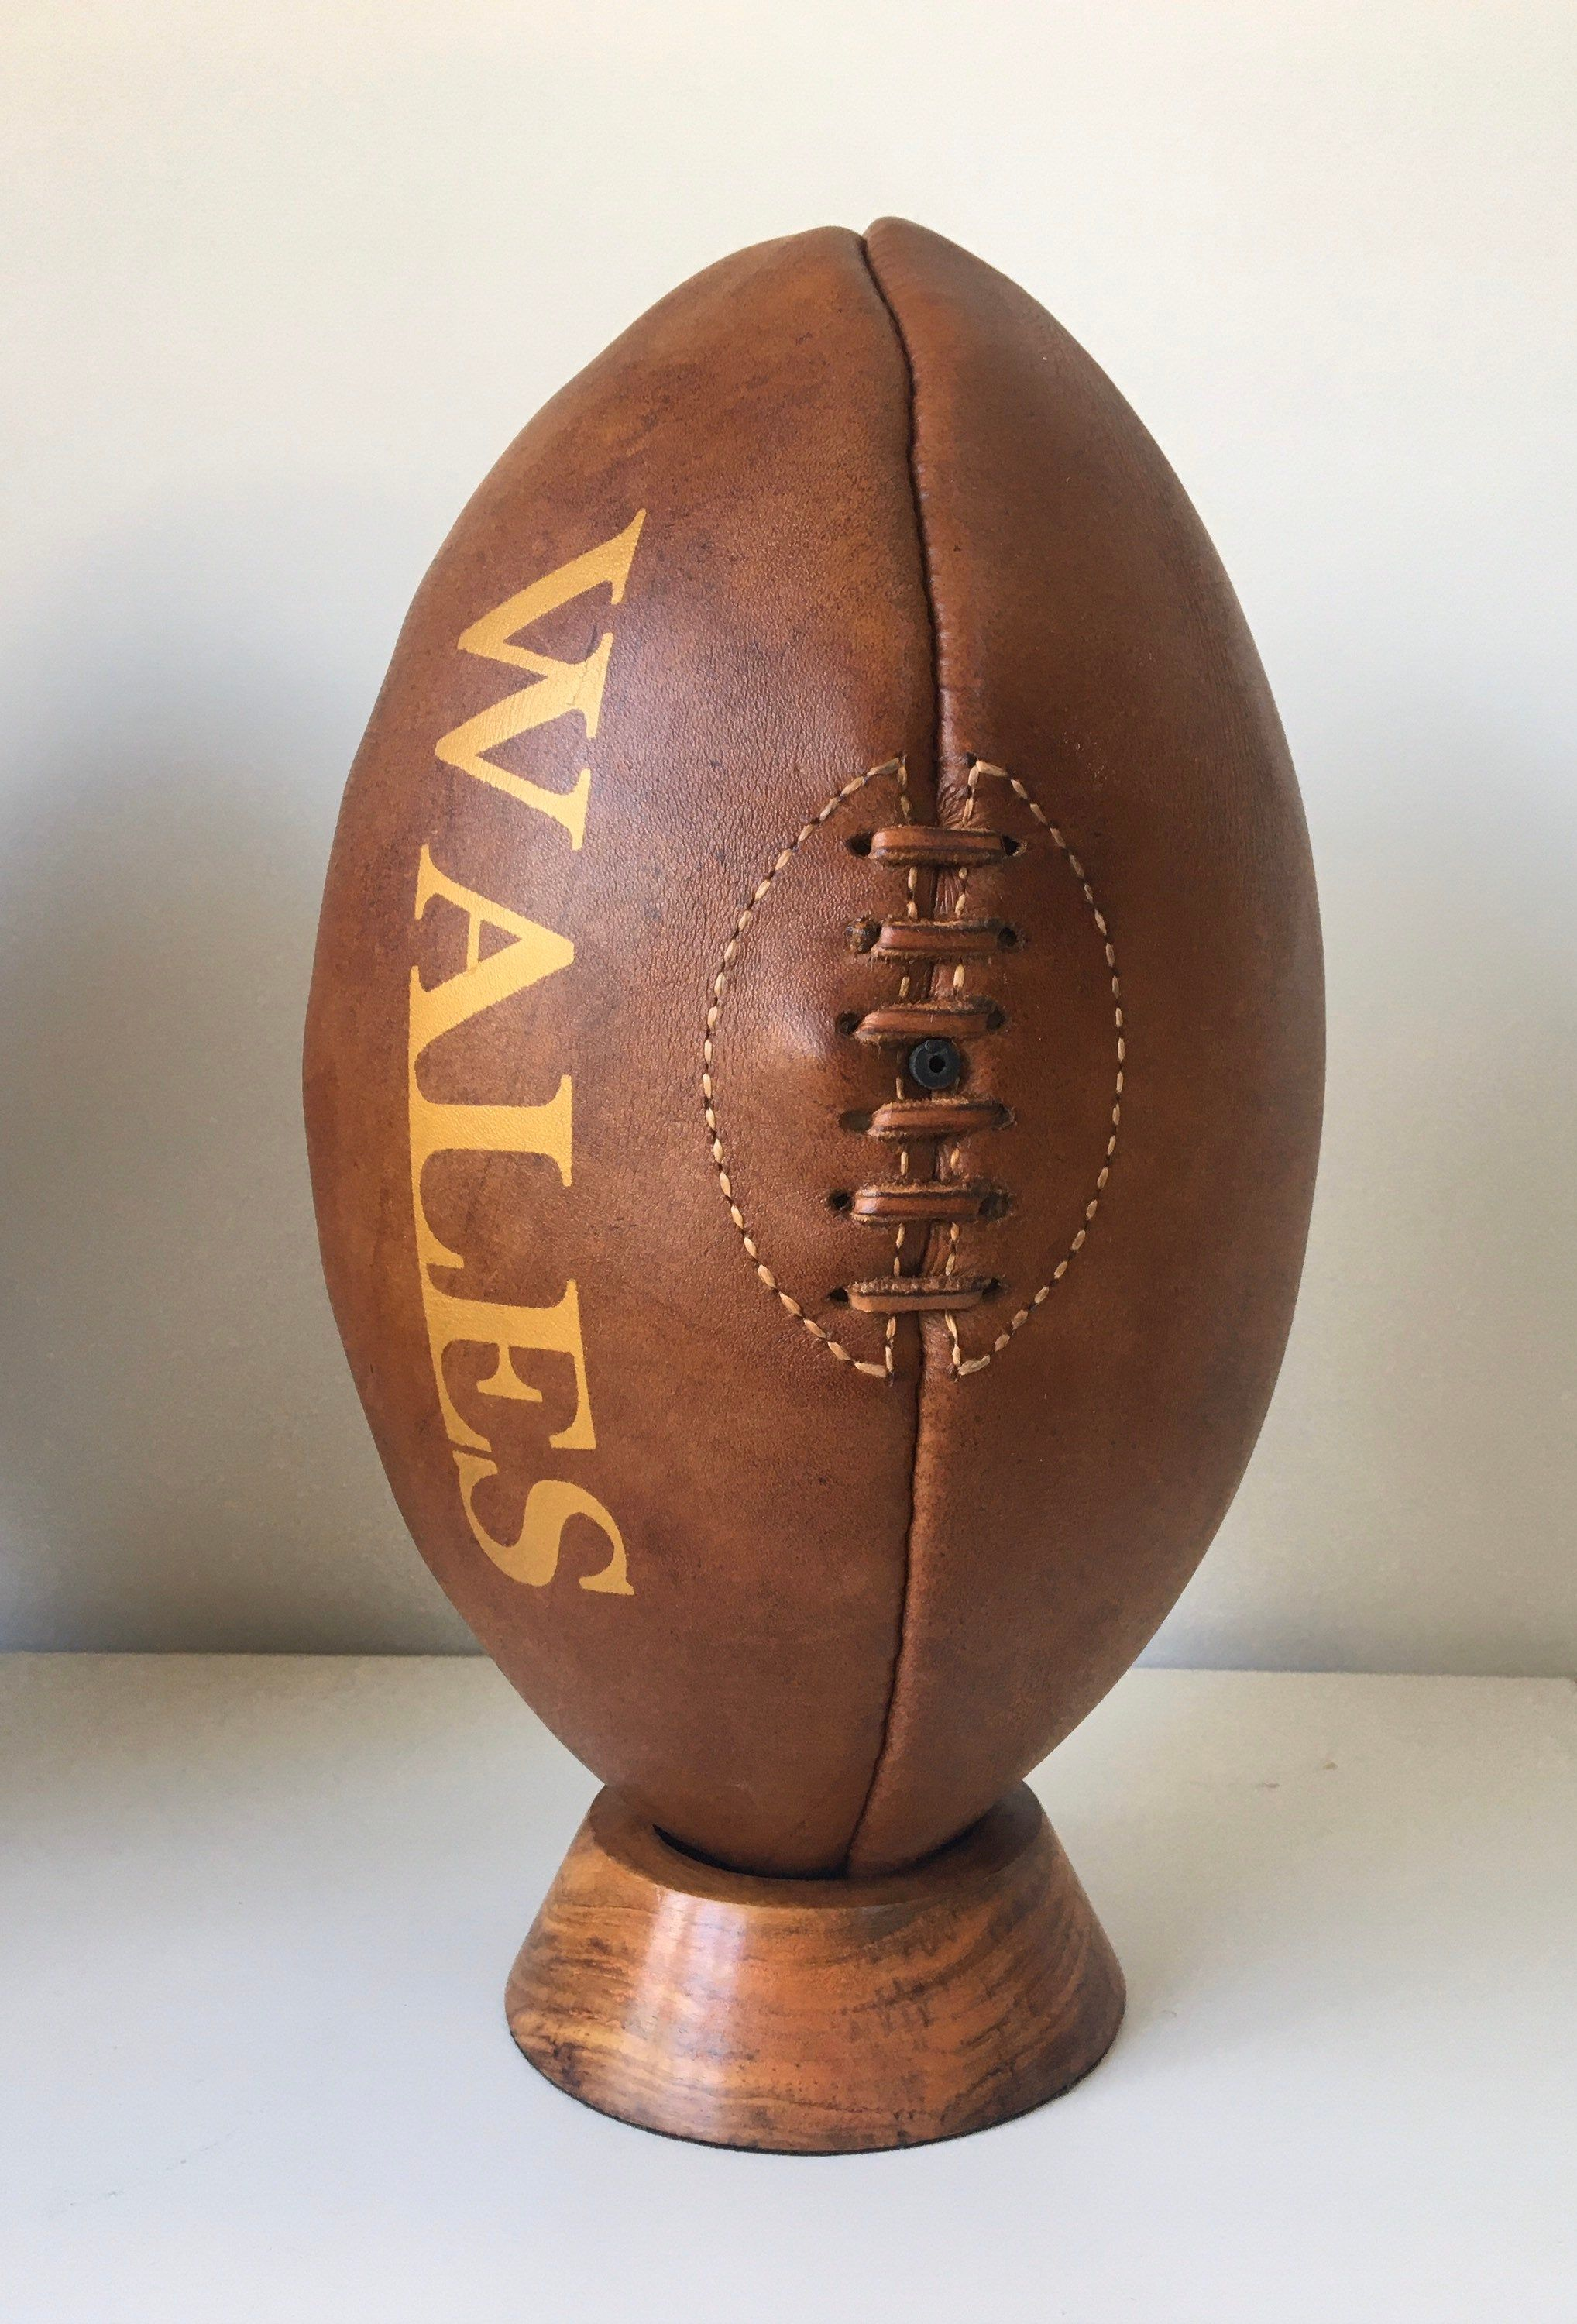 Rugby Vintage Wales Rugby Ball With Wooden Plinth Leather Rugby Ball Gift For Men Teenager Gift Corporate Gift Man Cave In 2020 Rugby Ball Rugby Vintage Teenager Gifts